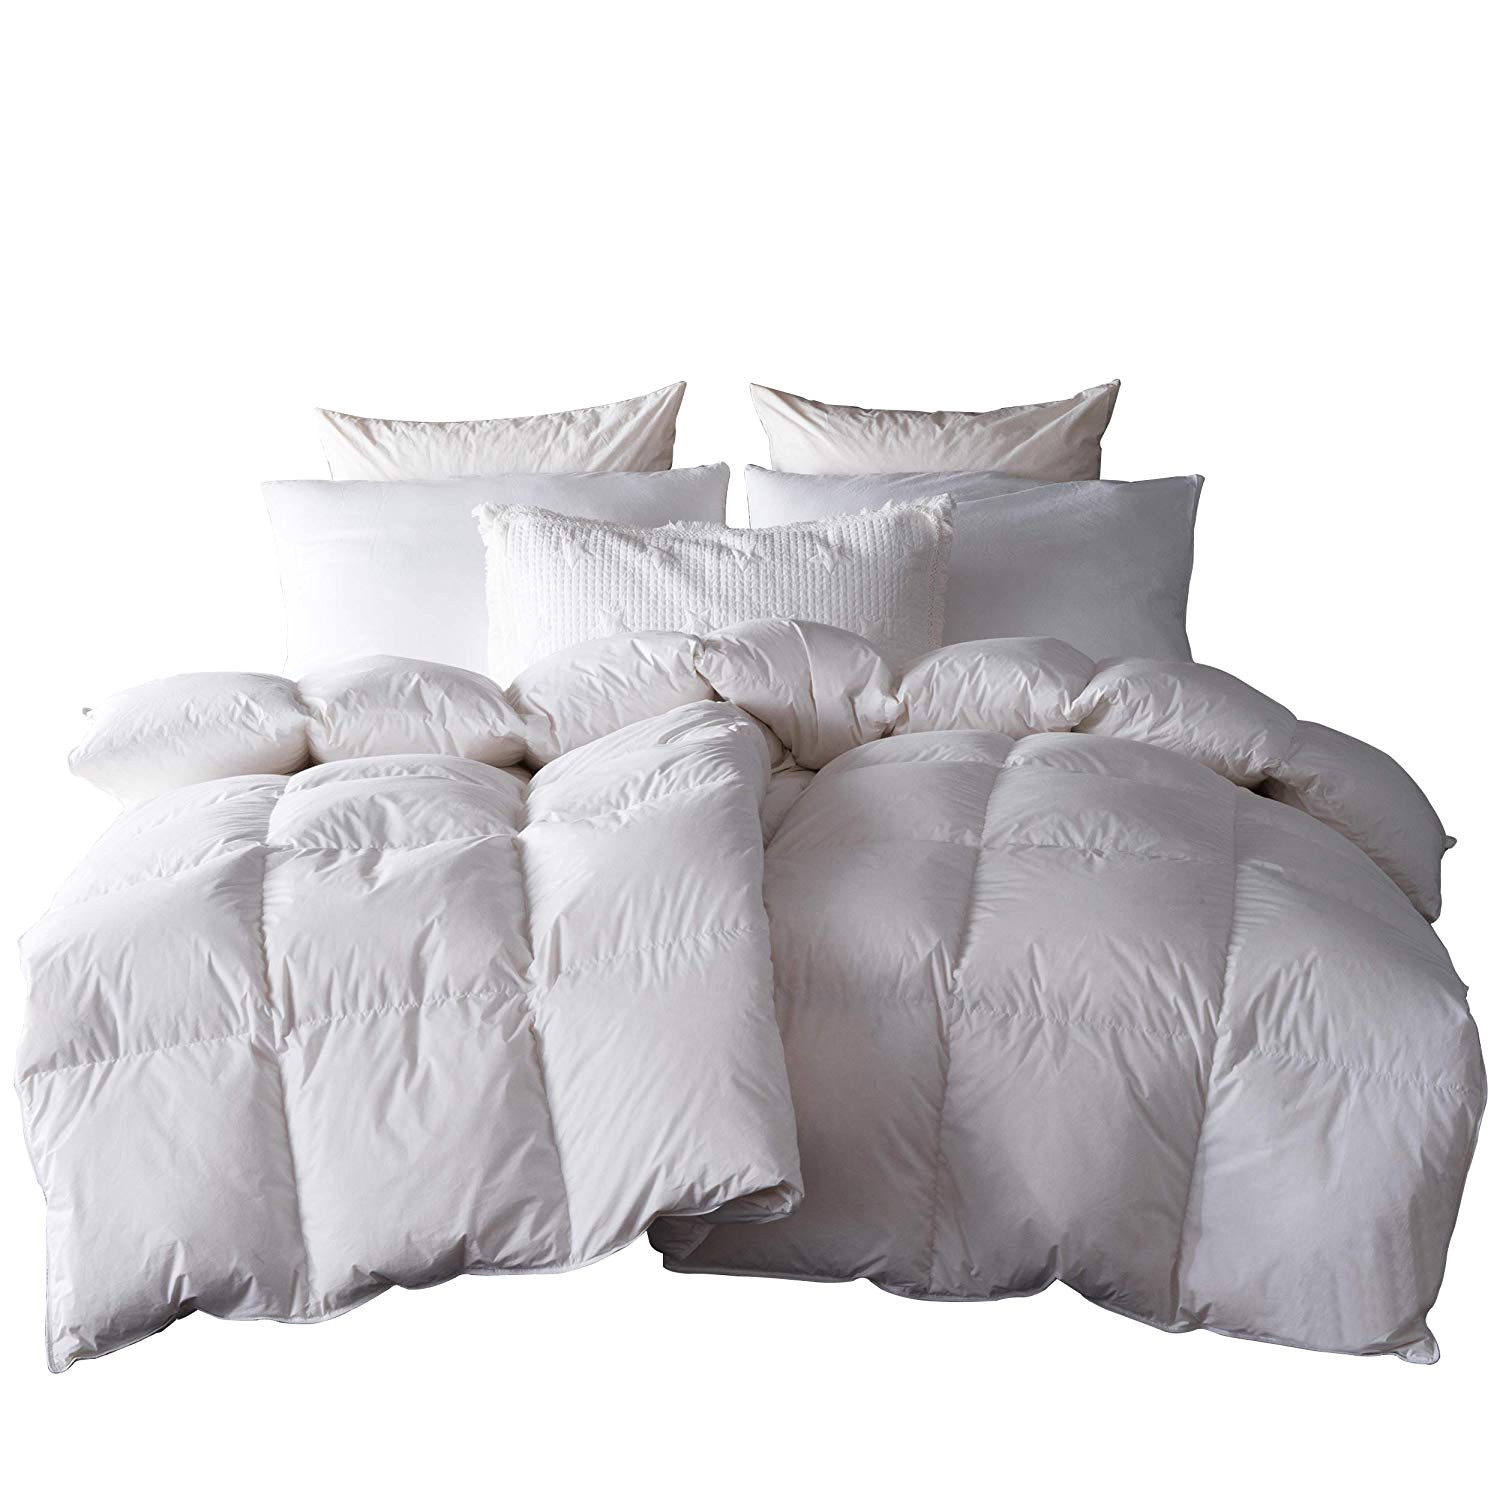 amazon com snowman white goose down feather blend comforter queen size 100 cotton cover down proof baffle boxes construction soft and warm home